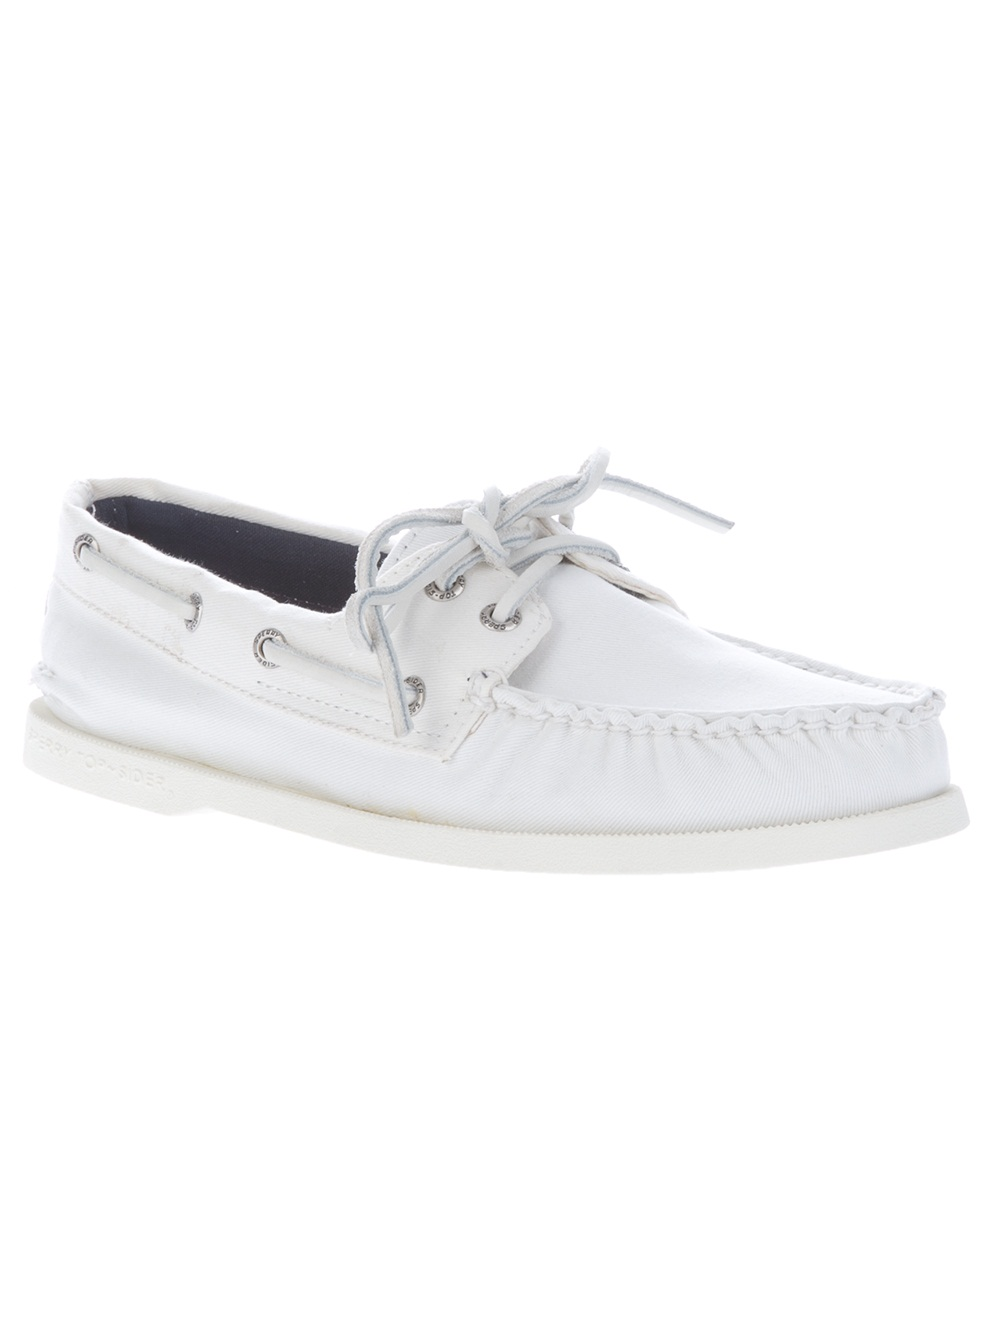 limited edition for sale discount footlocker finishline Sperry Topsider Sneaker Boat Shoes In White free shipping sneakernews best wholesale for sale Zd0lw3fd